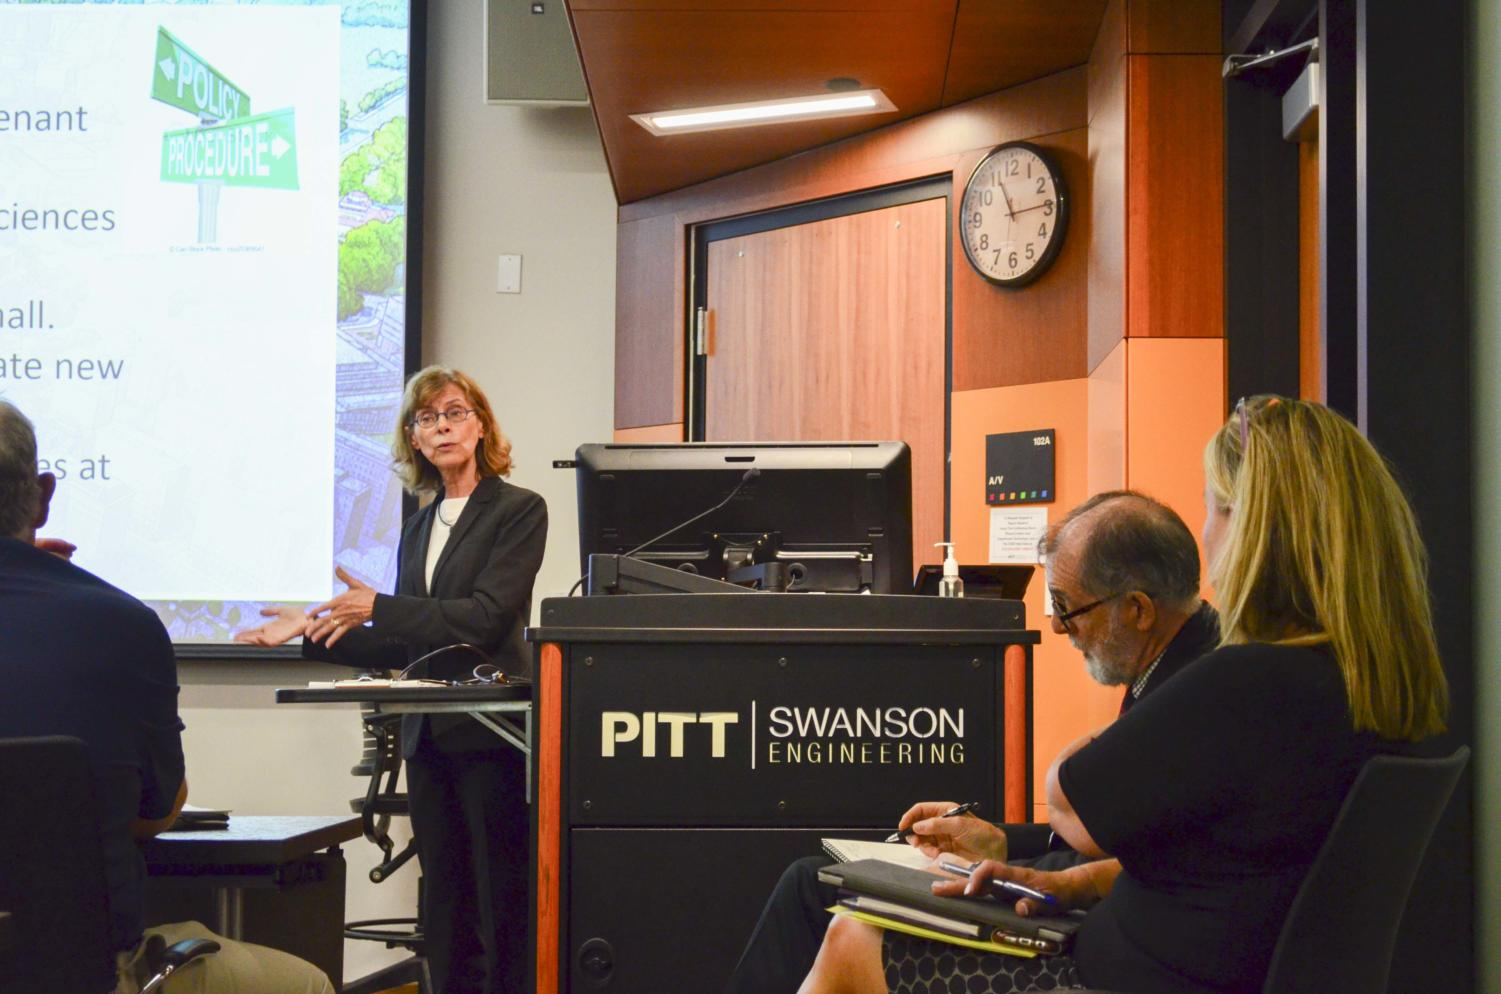 Mary Beth McGrew, the assistant vice chancellor for campus planning, spoke on creating a sense of community in One Bigelow.